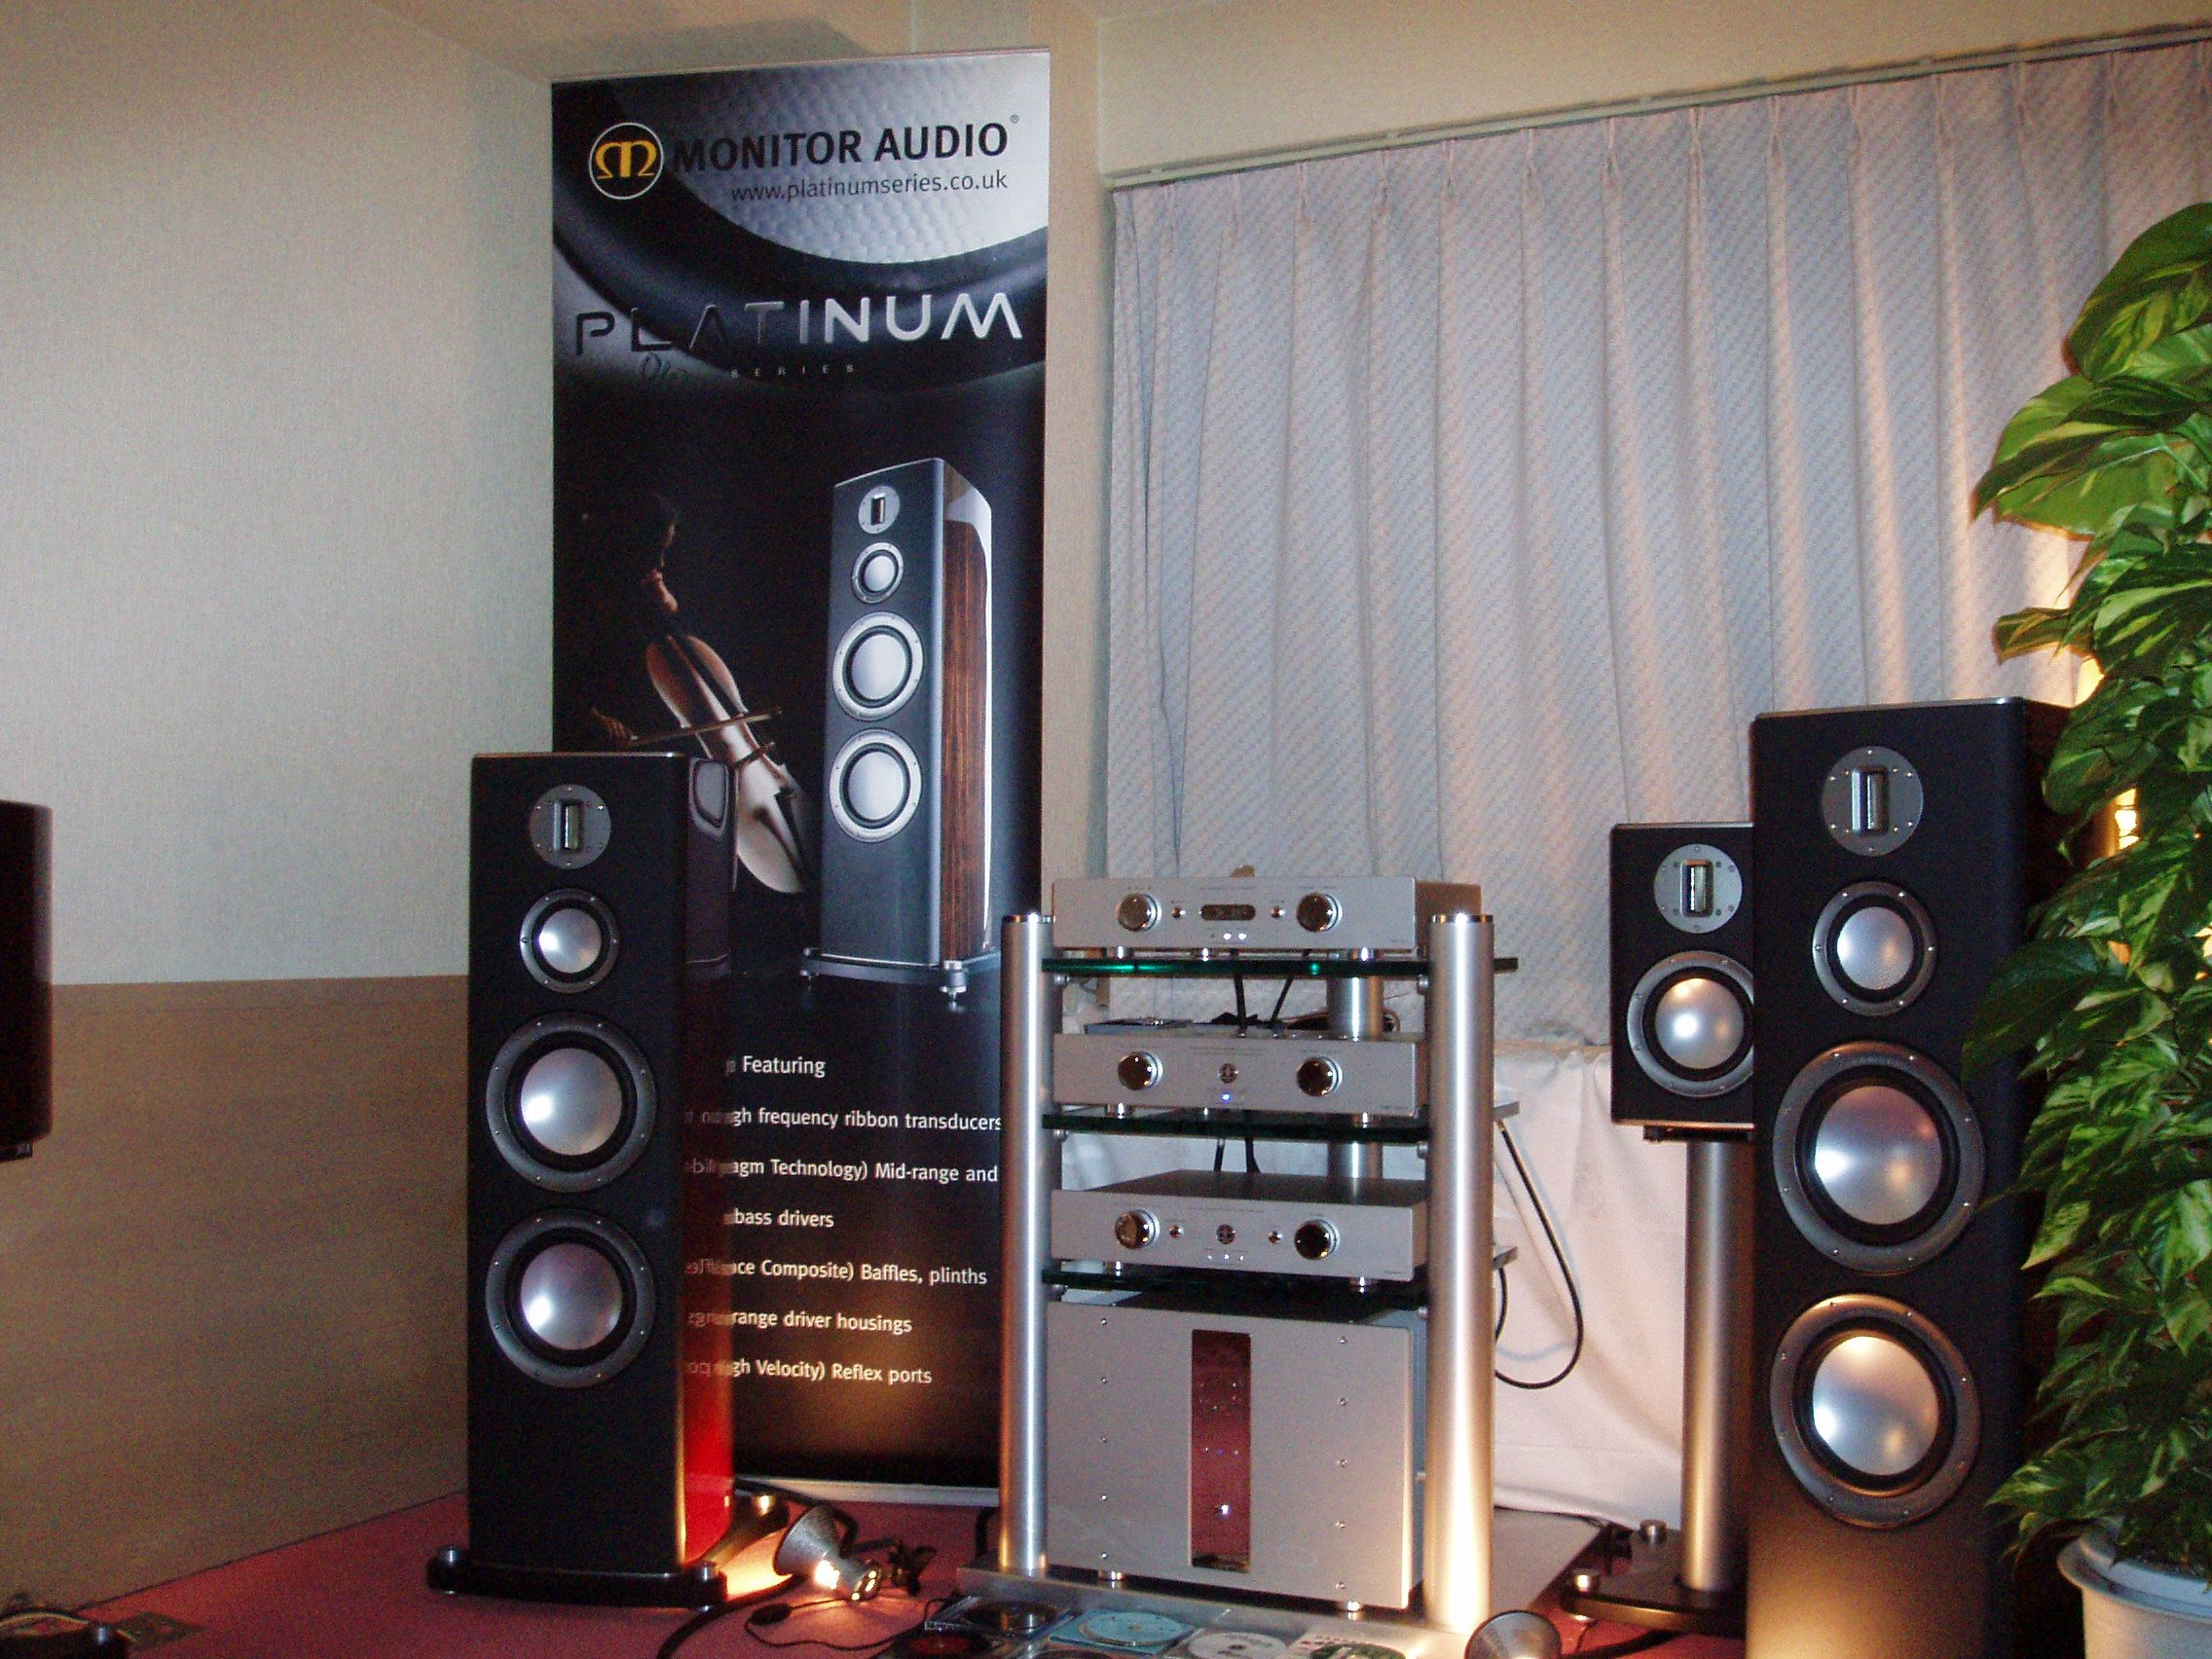 Monitor Audio Platinum Demo www.monitoraudio.de